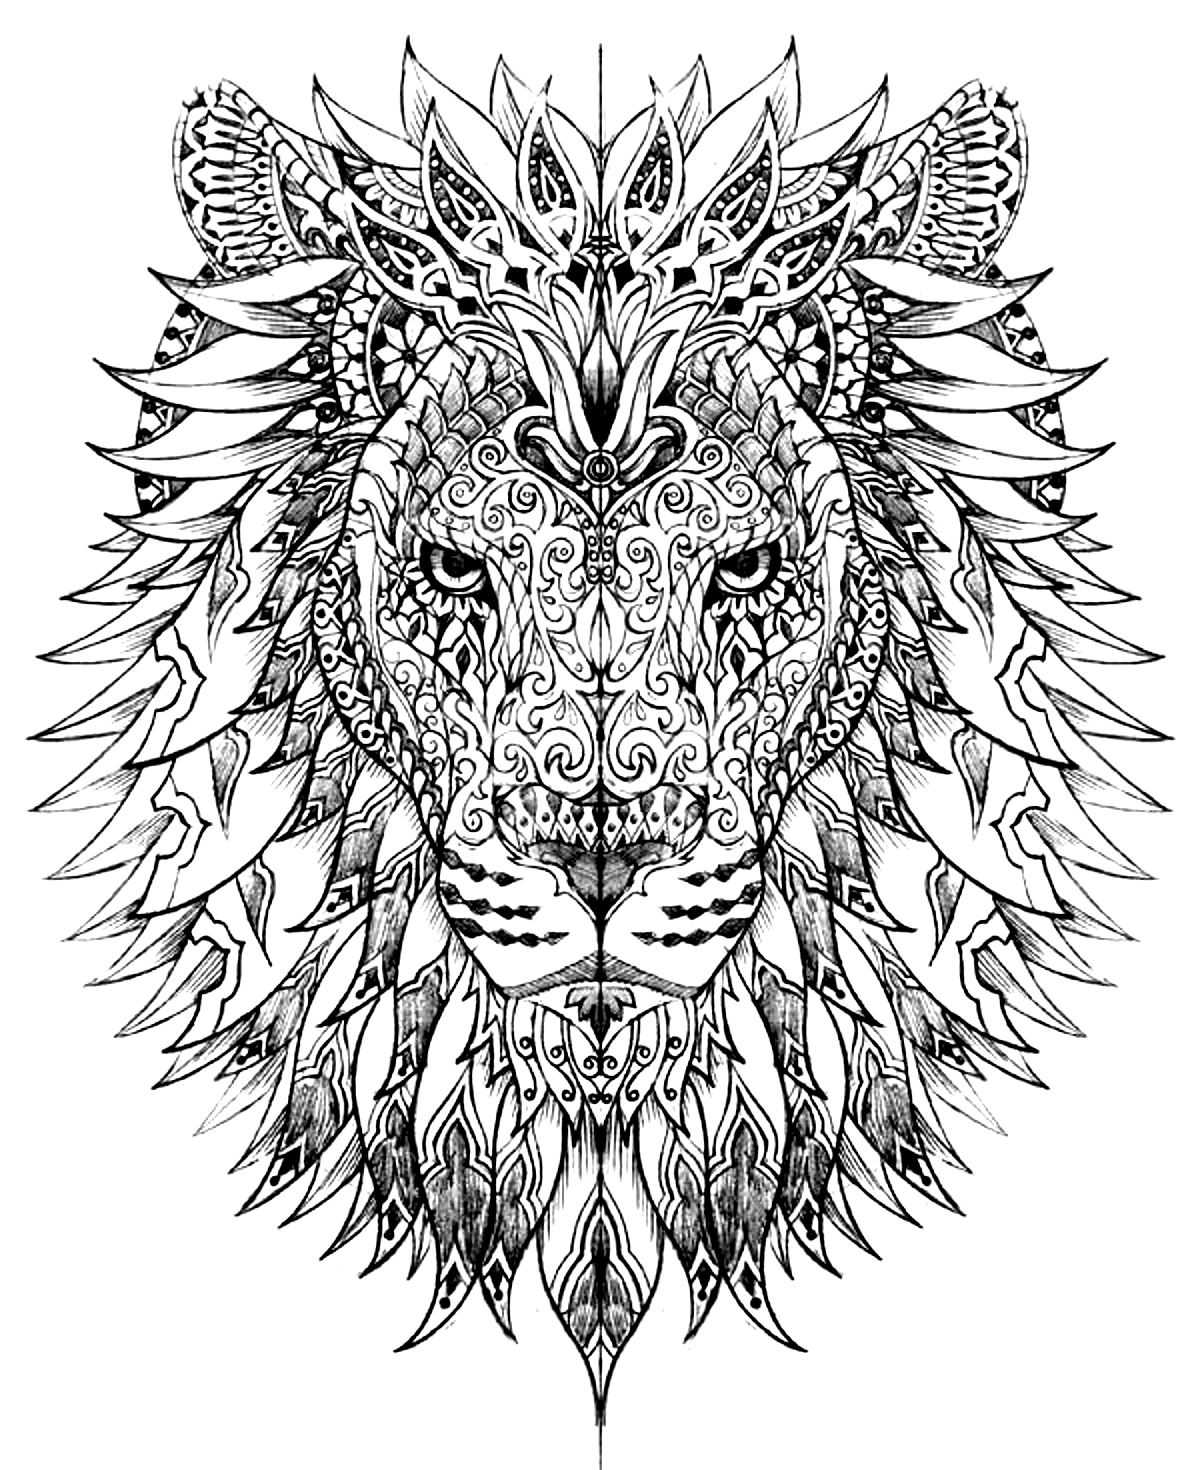 Coloring Page Lion Head Drawn With Very Smart And Harmonious Patterns